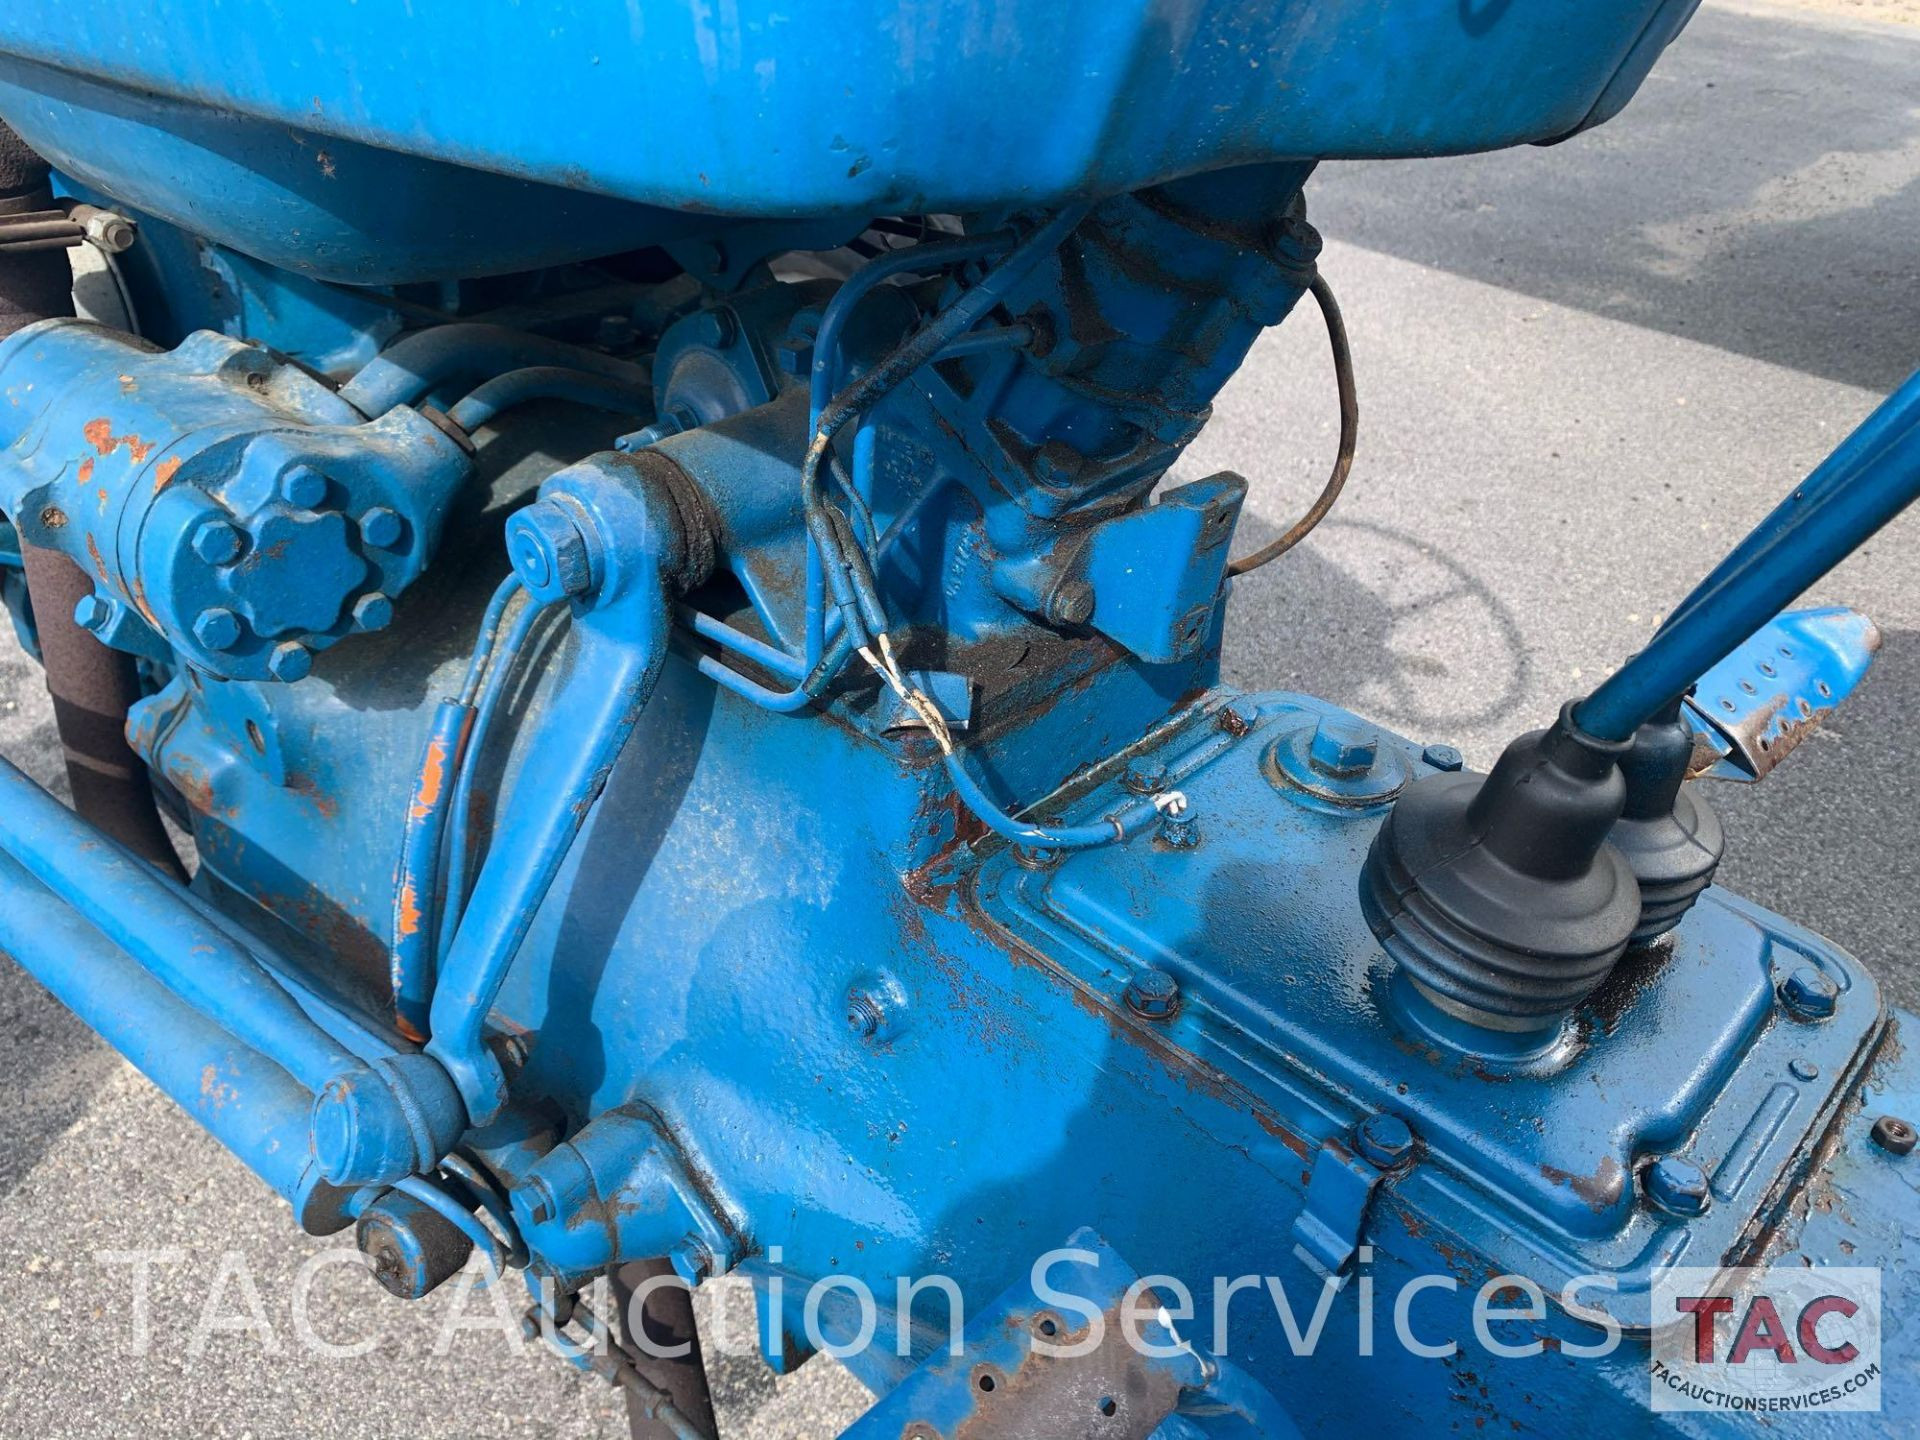 Ford 2000 Farm Tractor - Image 15 of 28